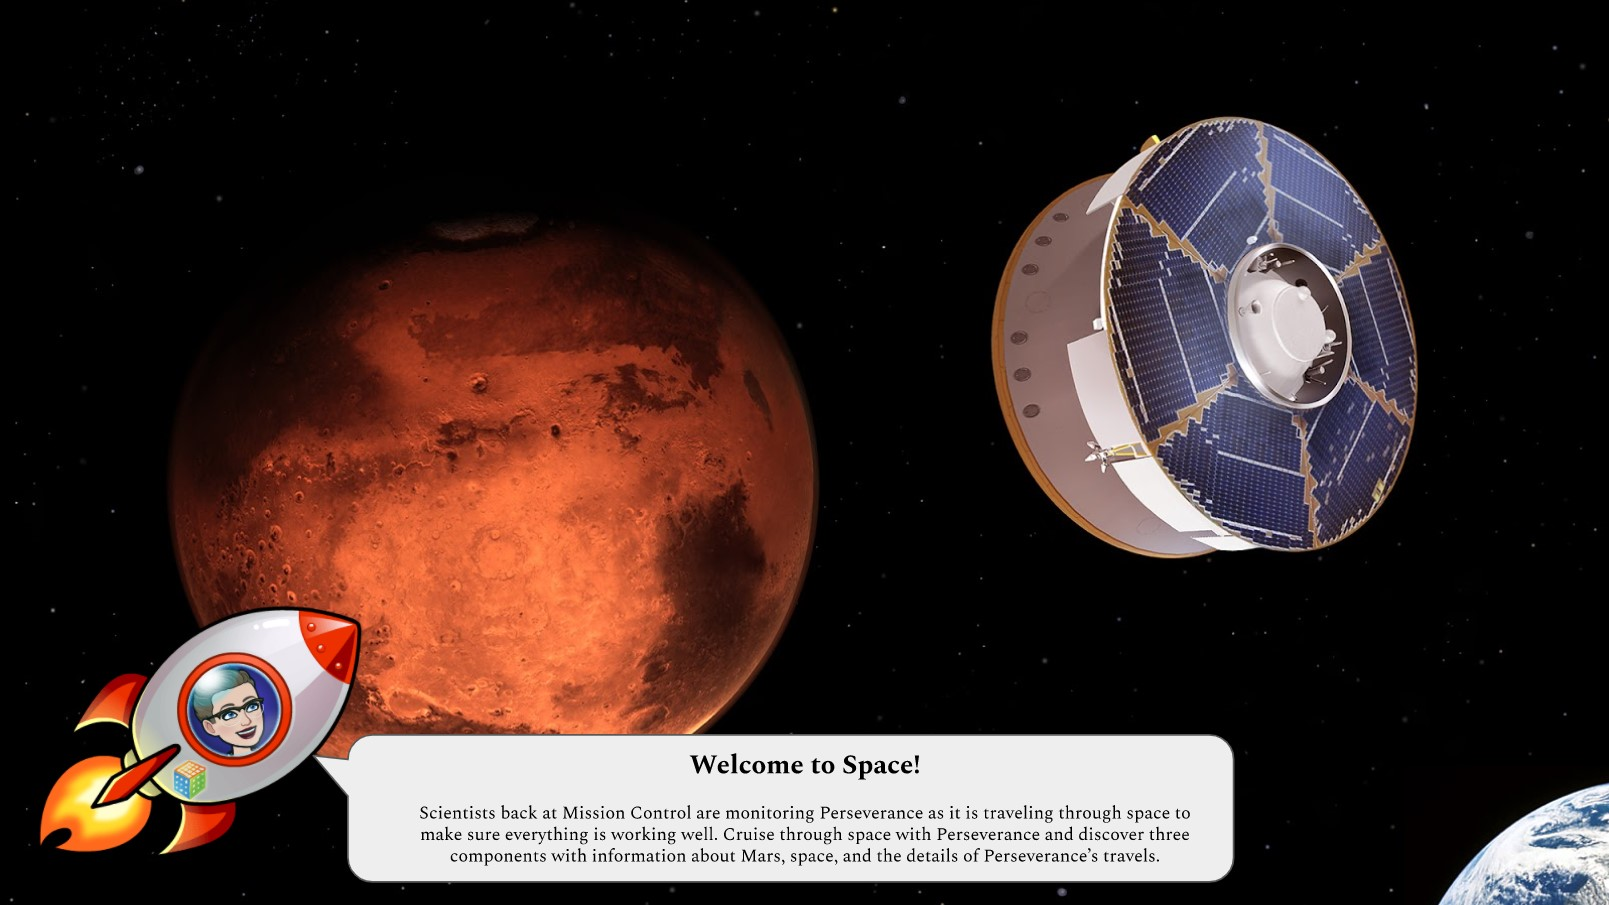 https://discoverycubeconnect.org/wp-content/uploads/2021/02/Mission-to-Mars-3.jpg